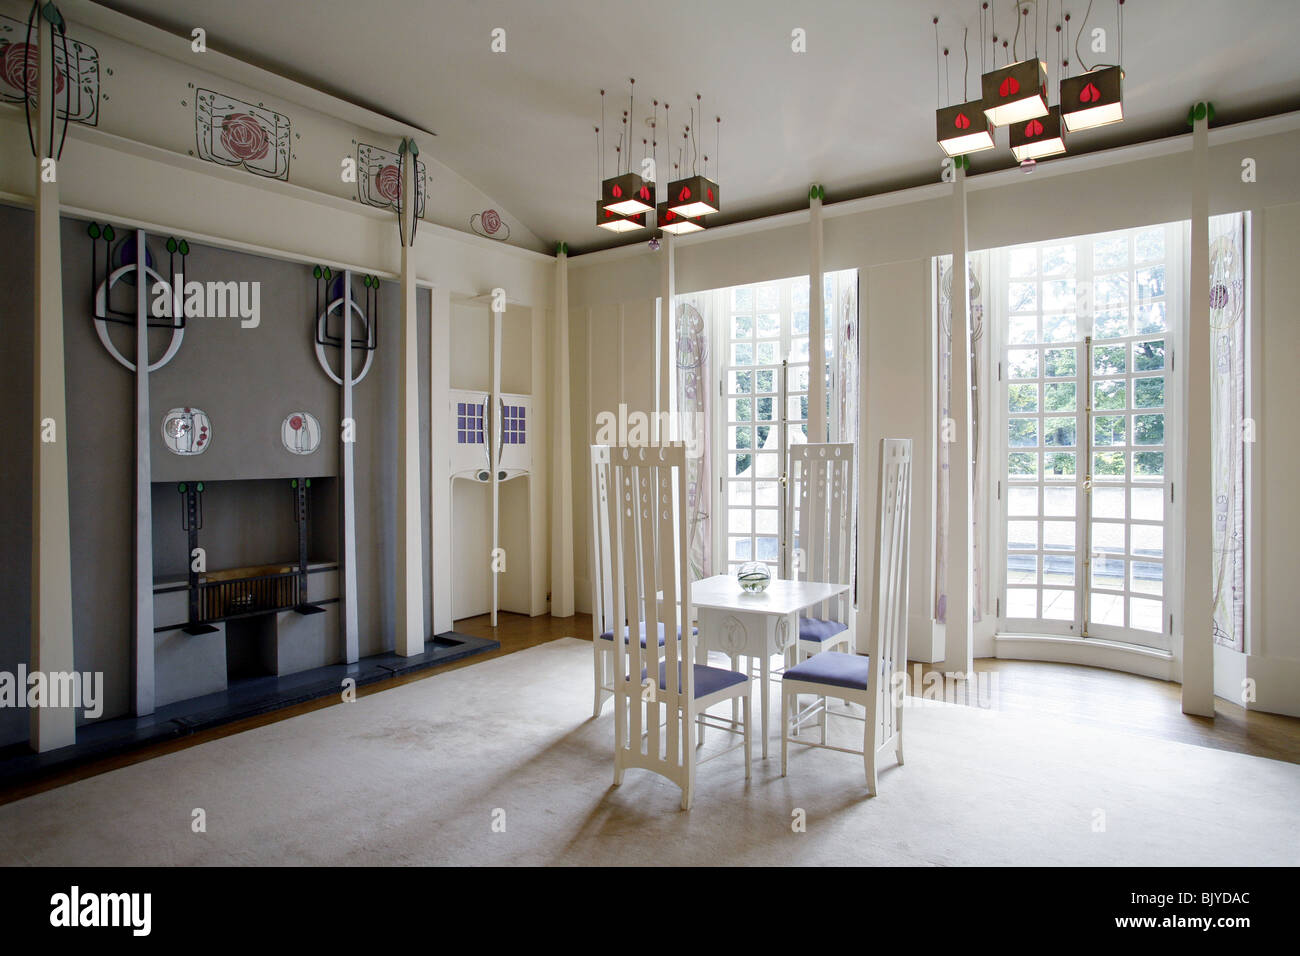 thomas table and chairs uk flexible love chair charles rennie mackintosh, house for an art lover, the music room stock photo, royalty free ...